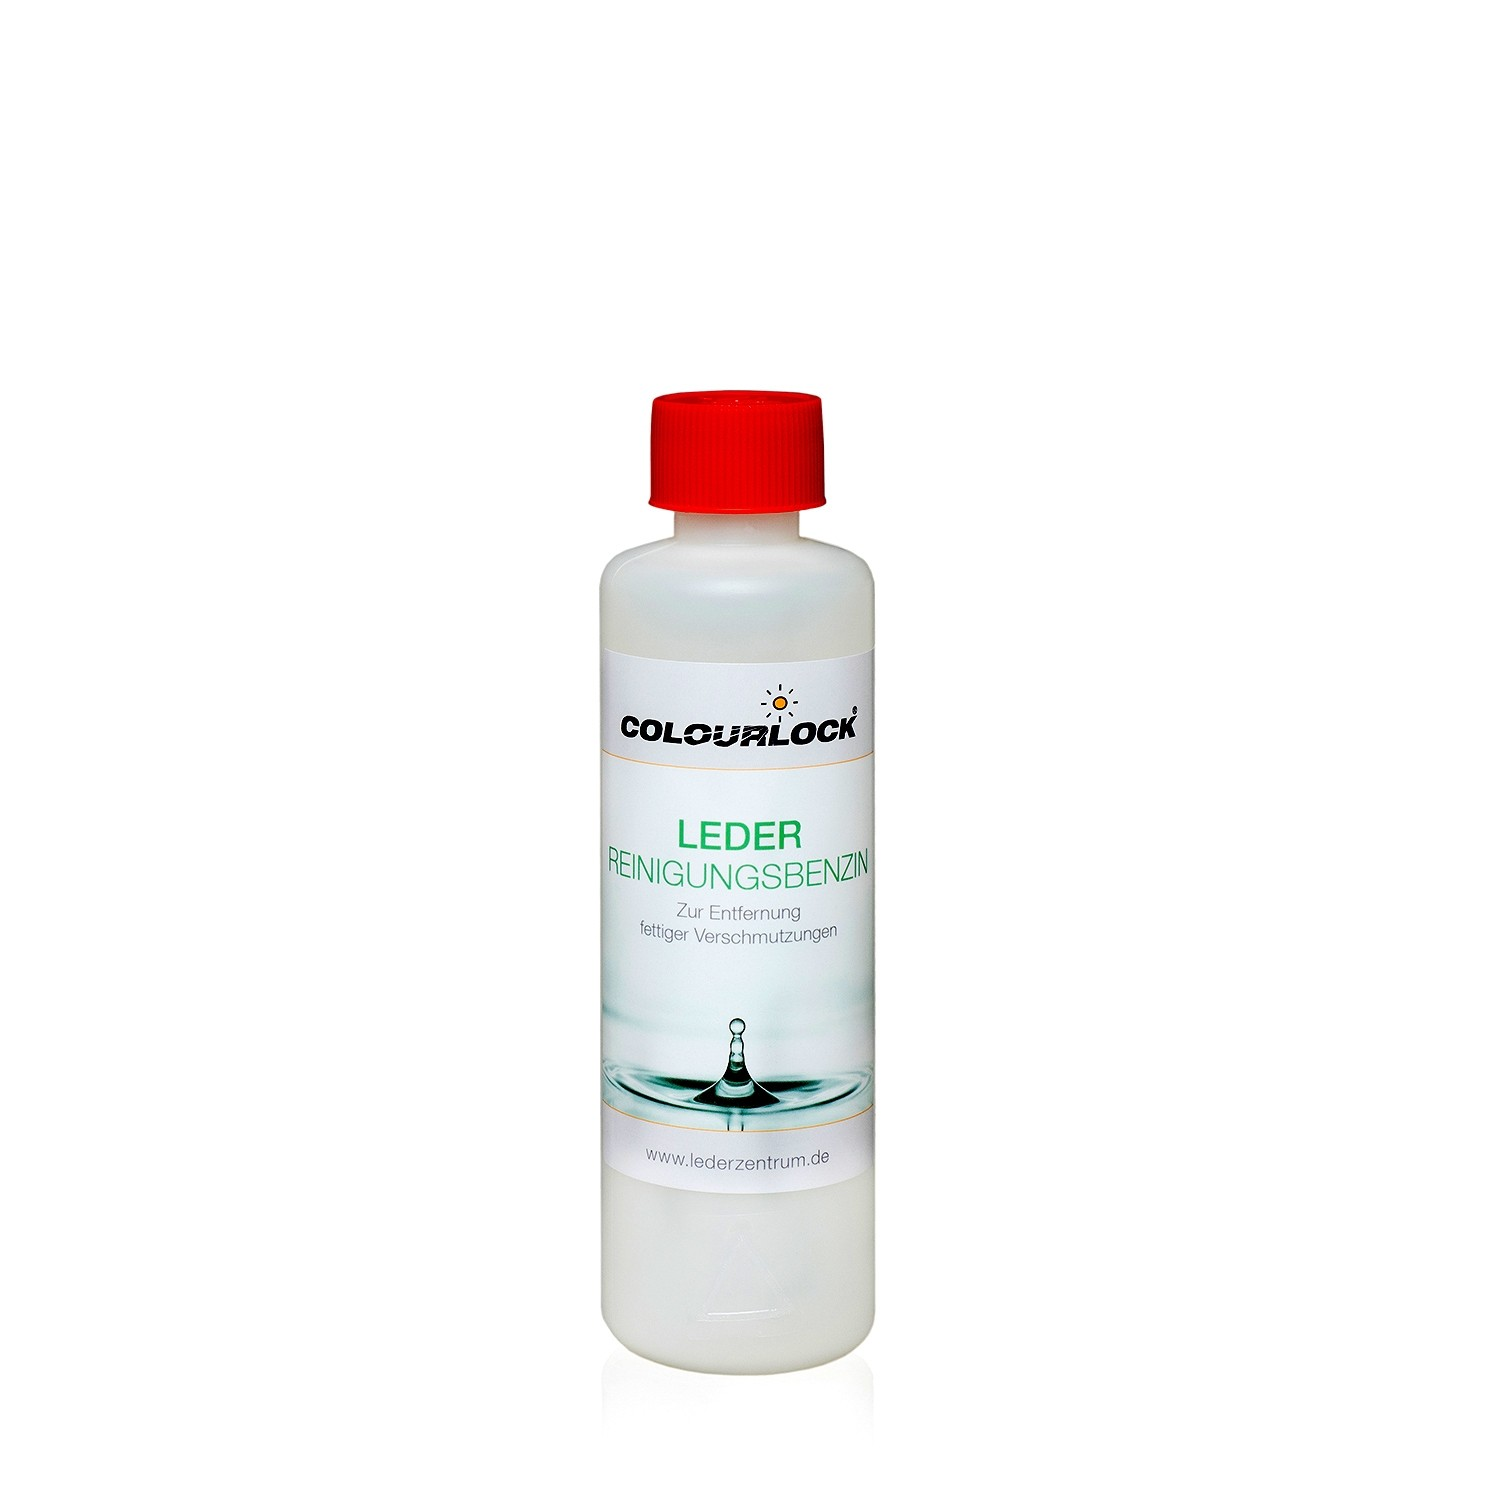 COLOURLOCK Leder Reinigungsbenzin, 250 ml